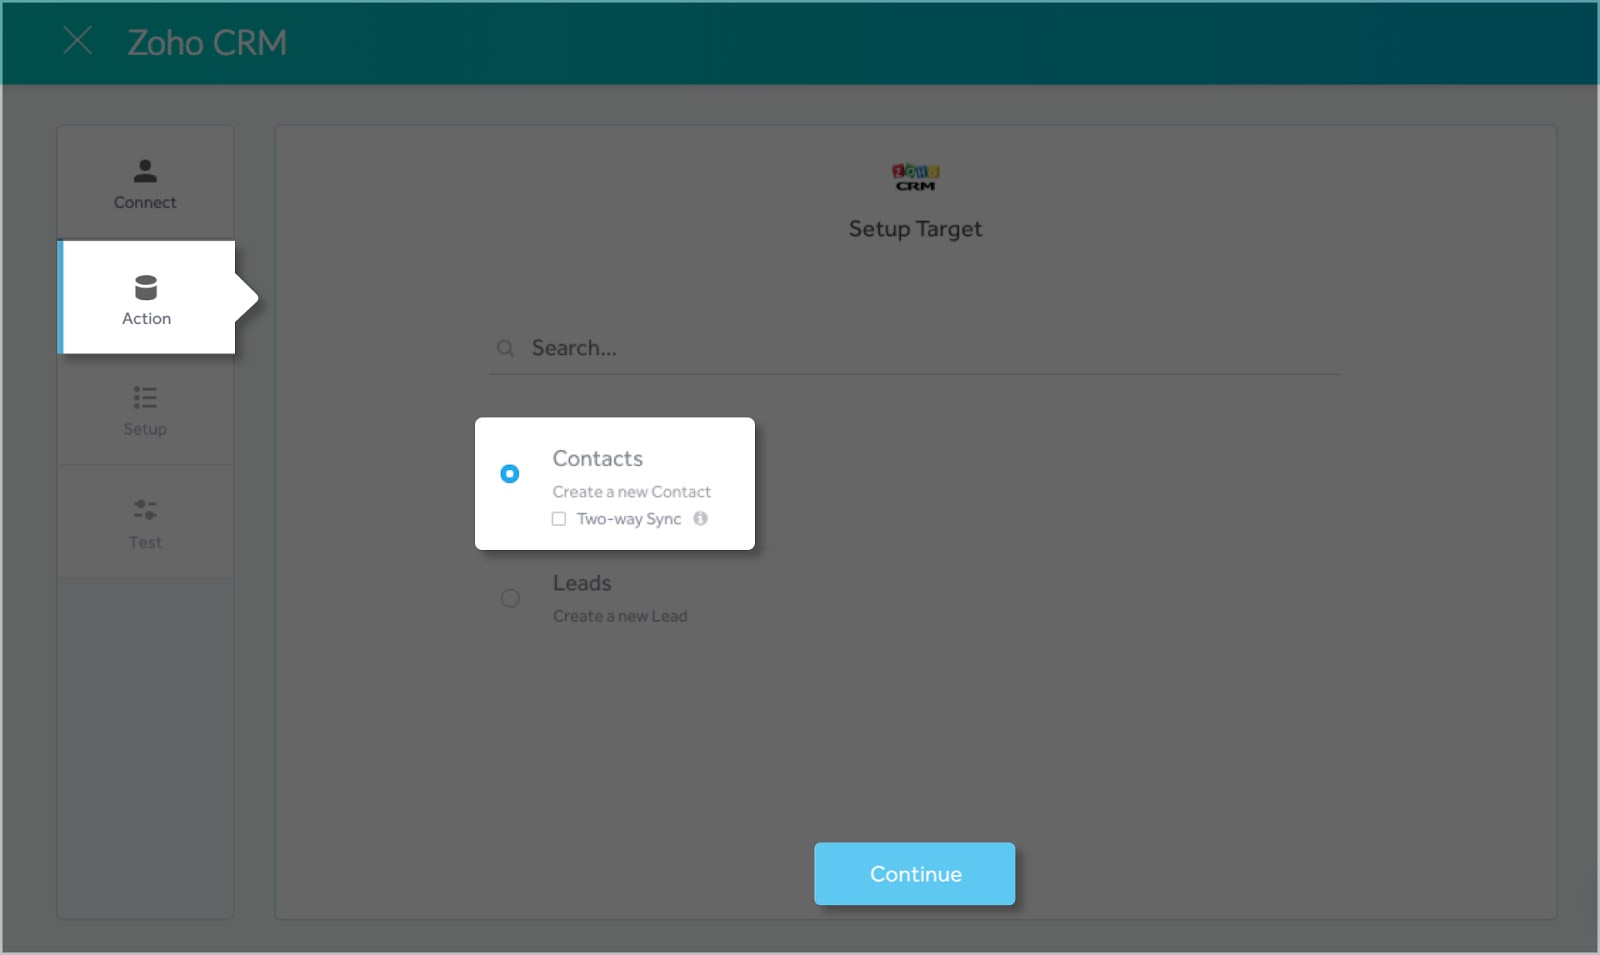 Specifying the Action that takes place in Zoho CRM